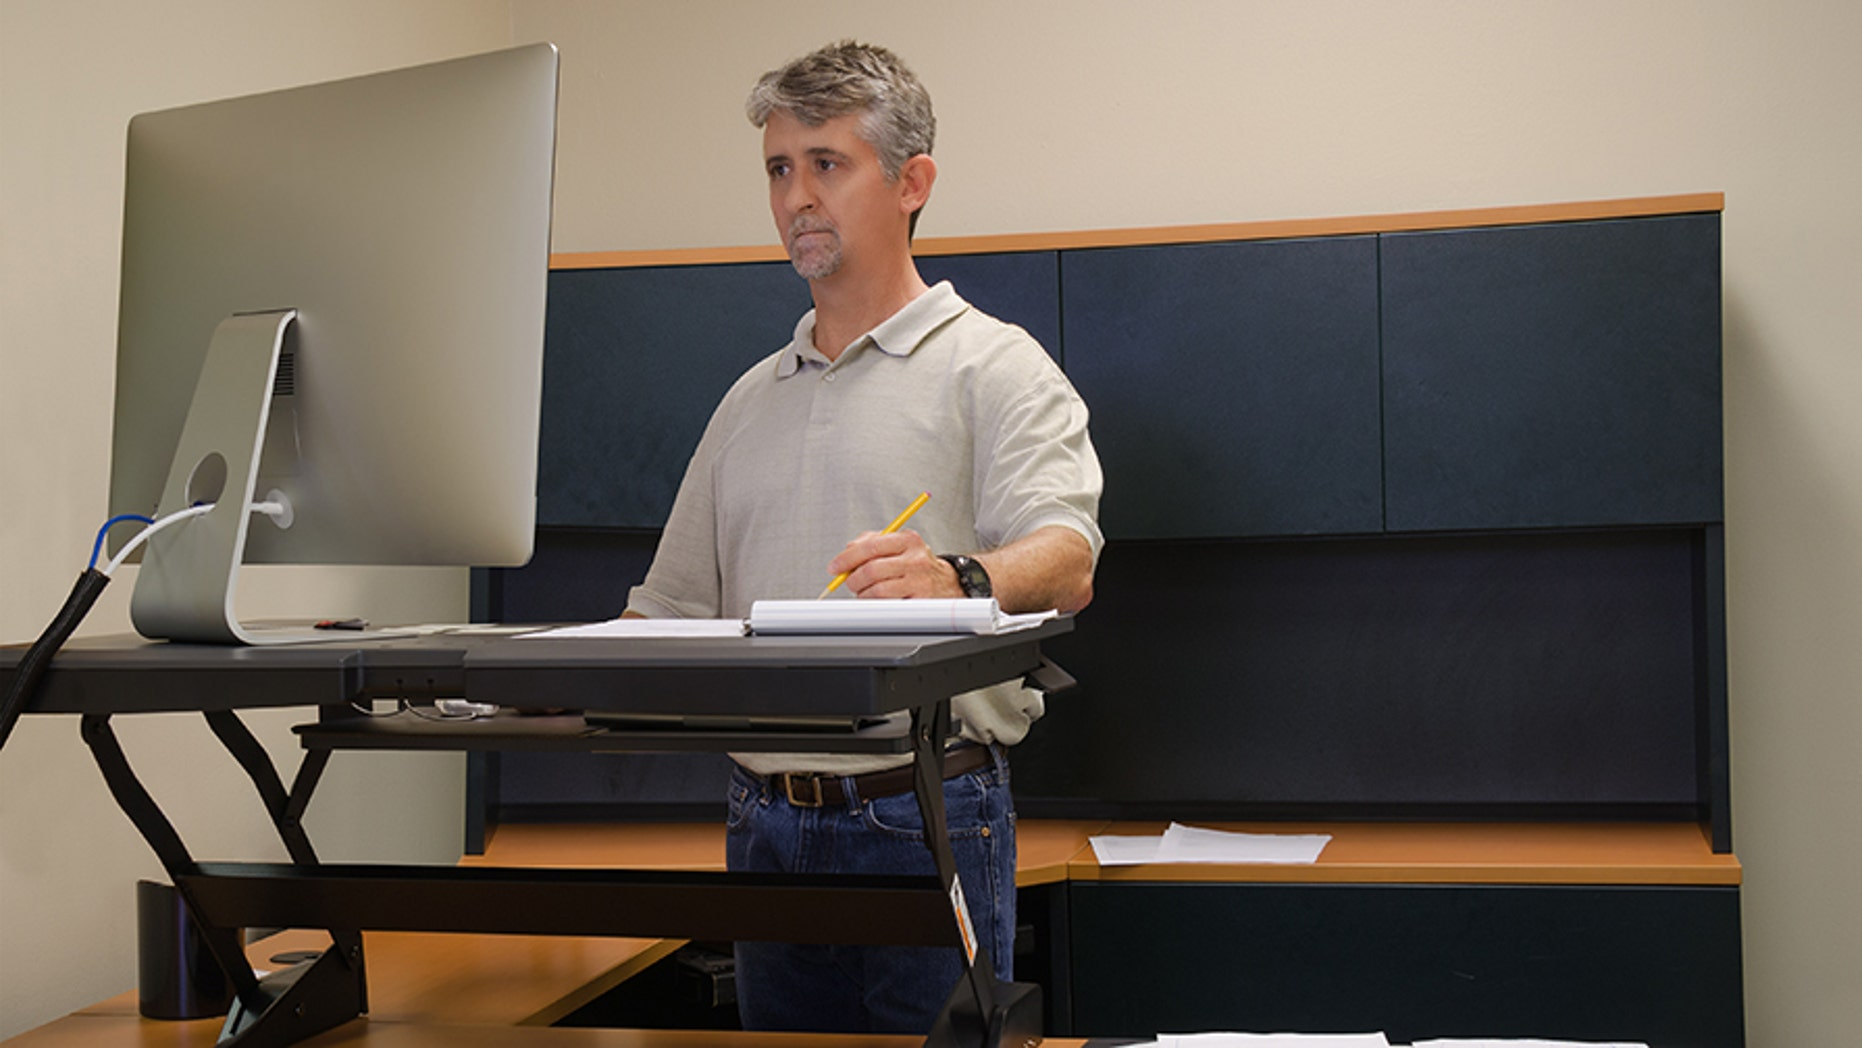 """Using a standing desk for long periods of time can lead to """"significant"""" discomfort and mental sluggishness, according to a new study."""